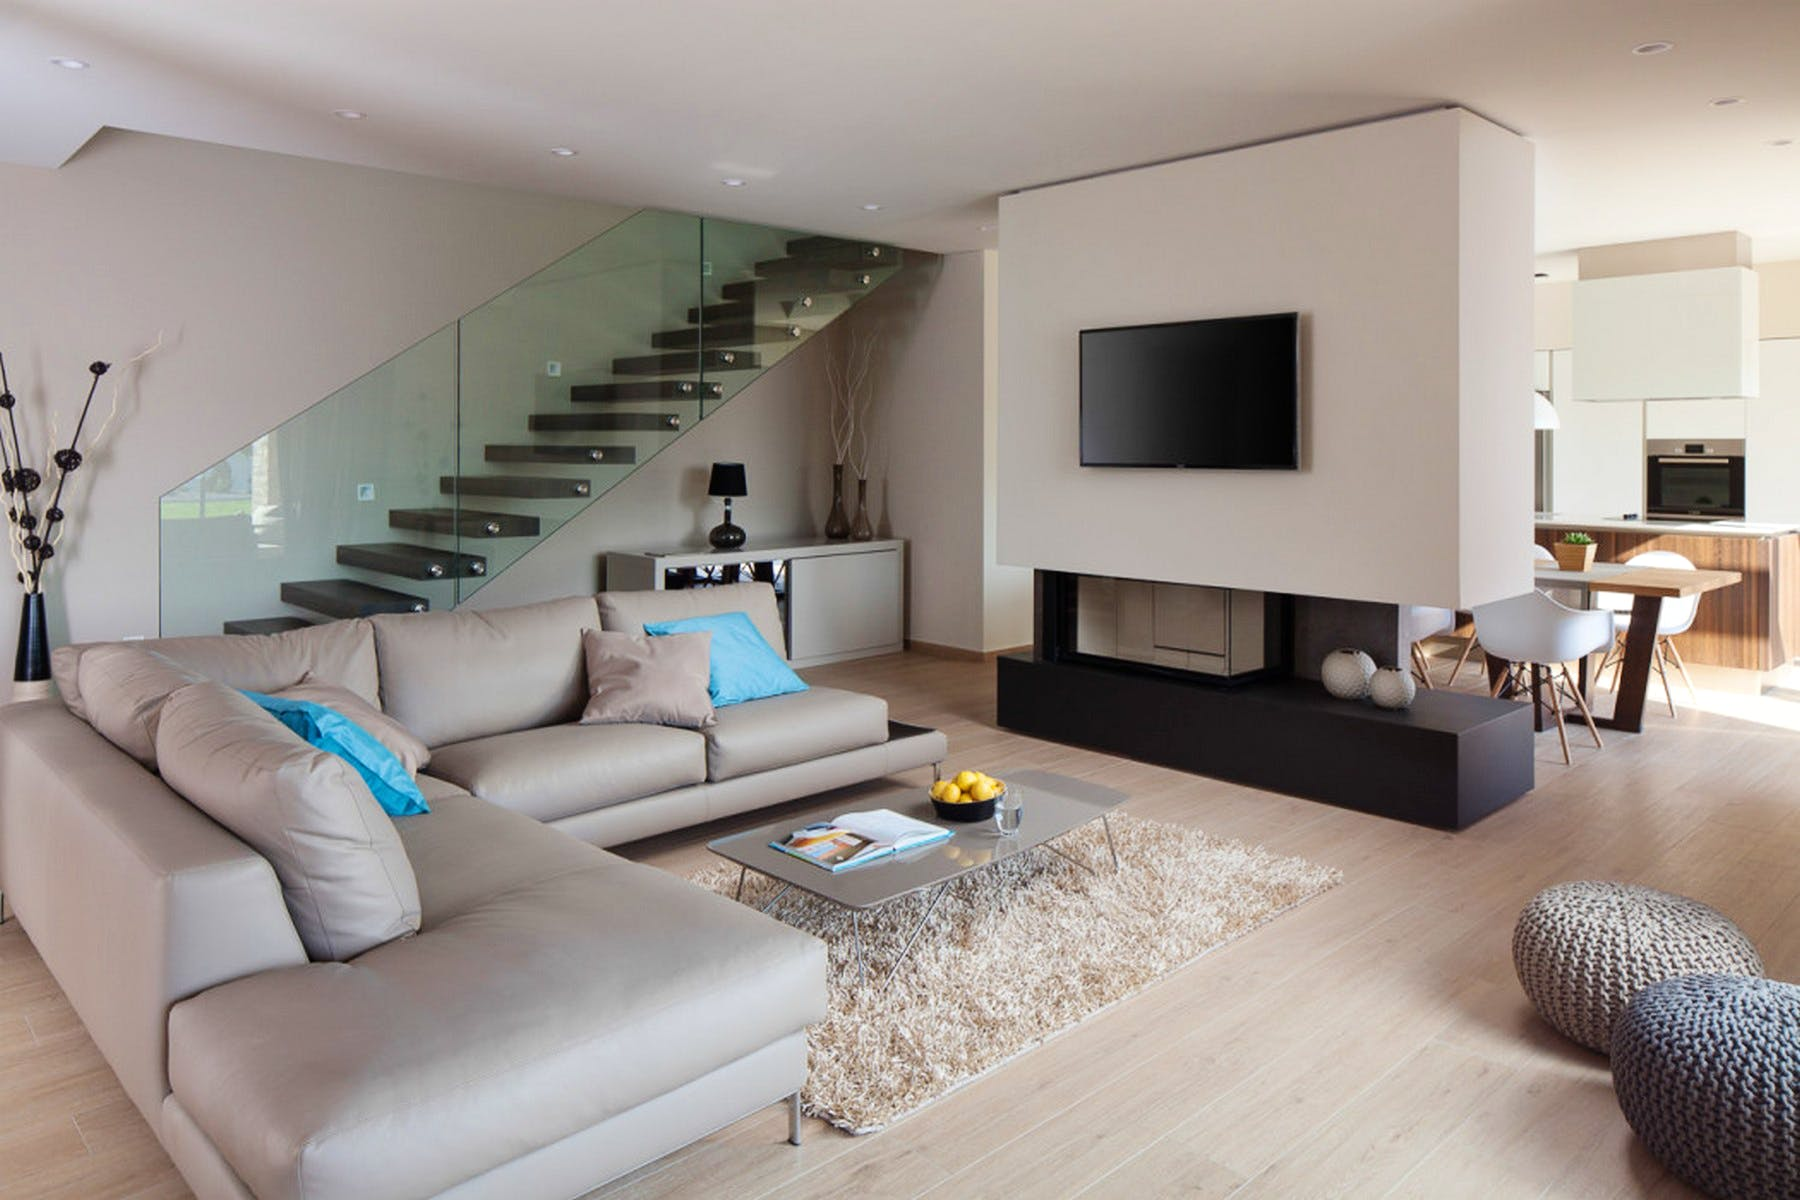 Soothing tones of living room